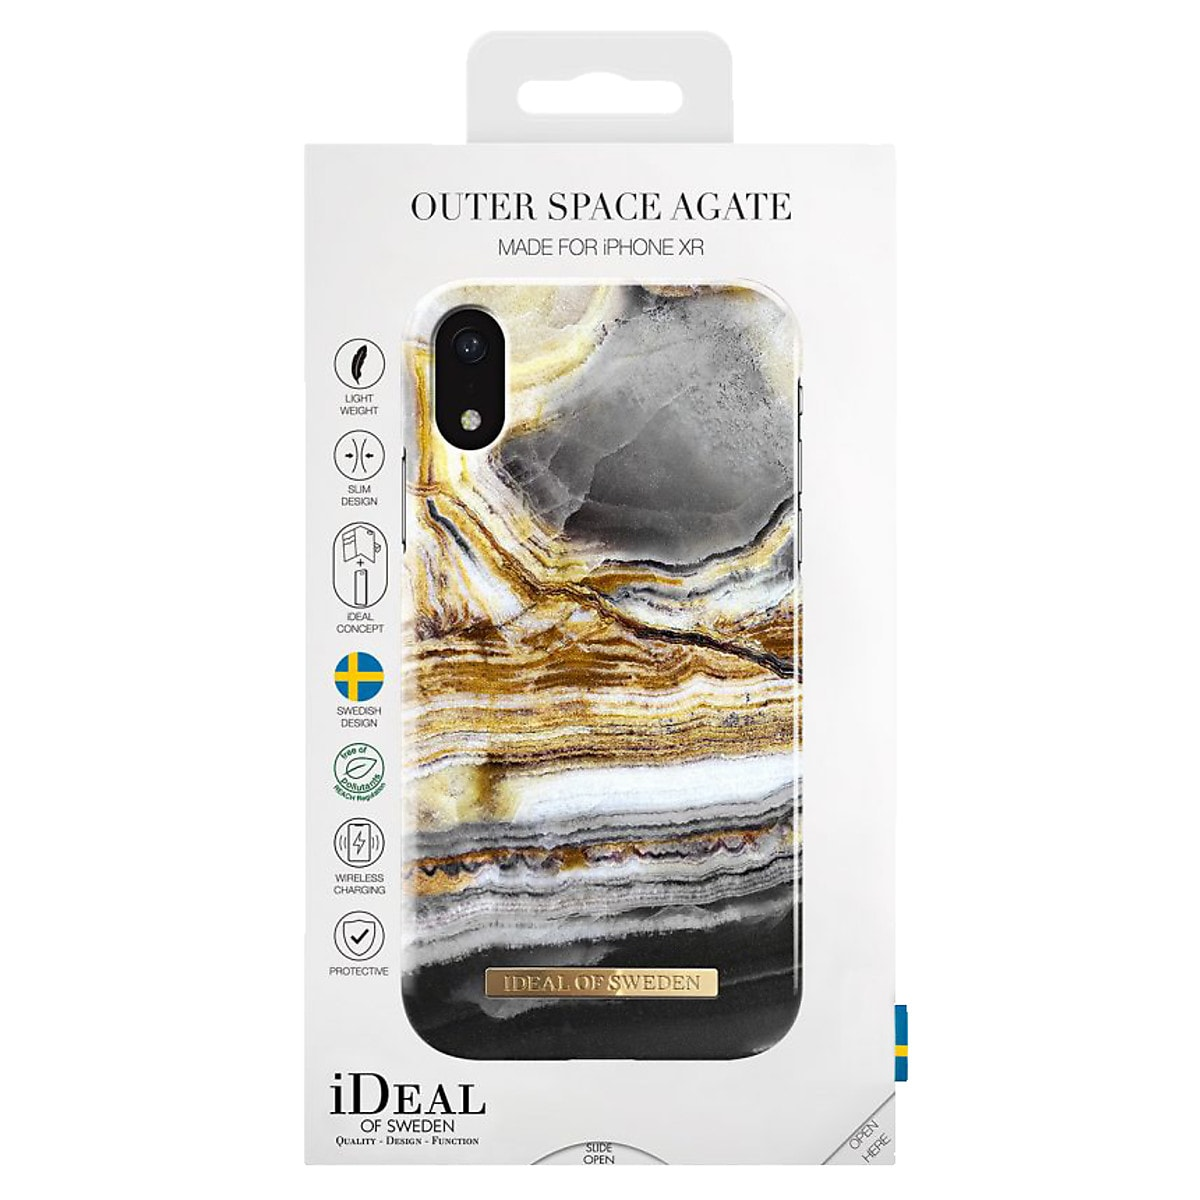 iDeal of Sweden Mobile Phone Case for iPhone XR